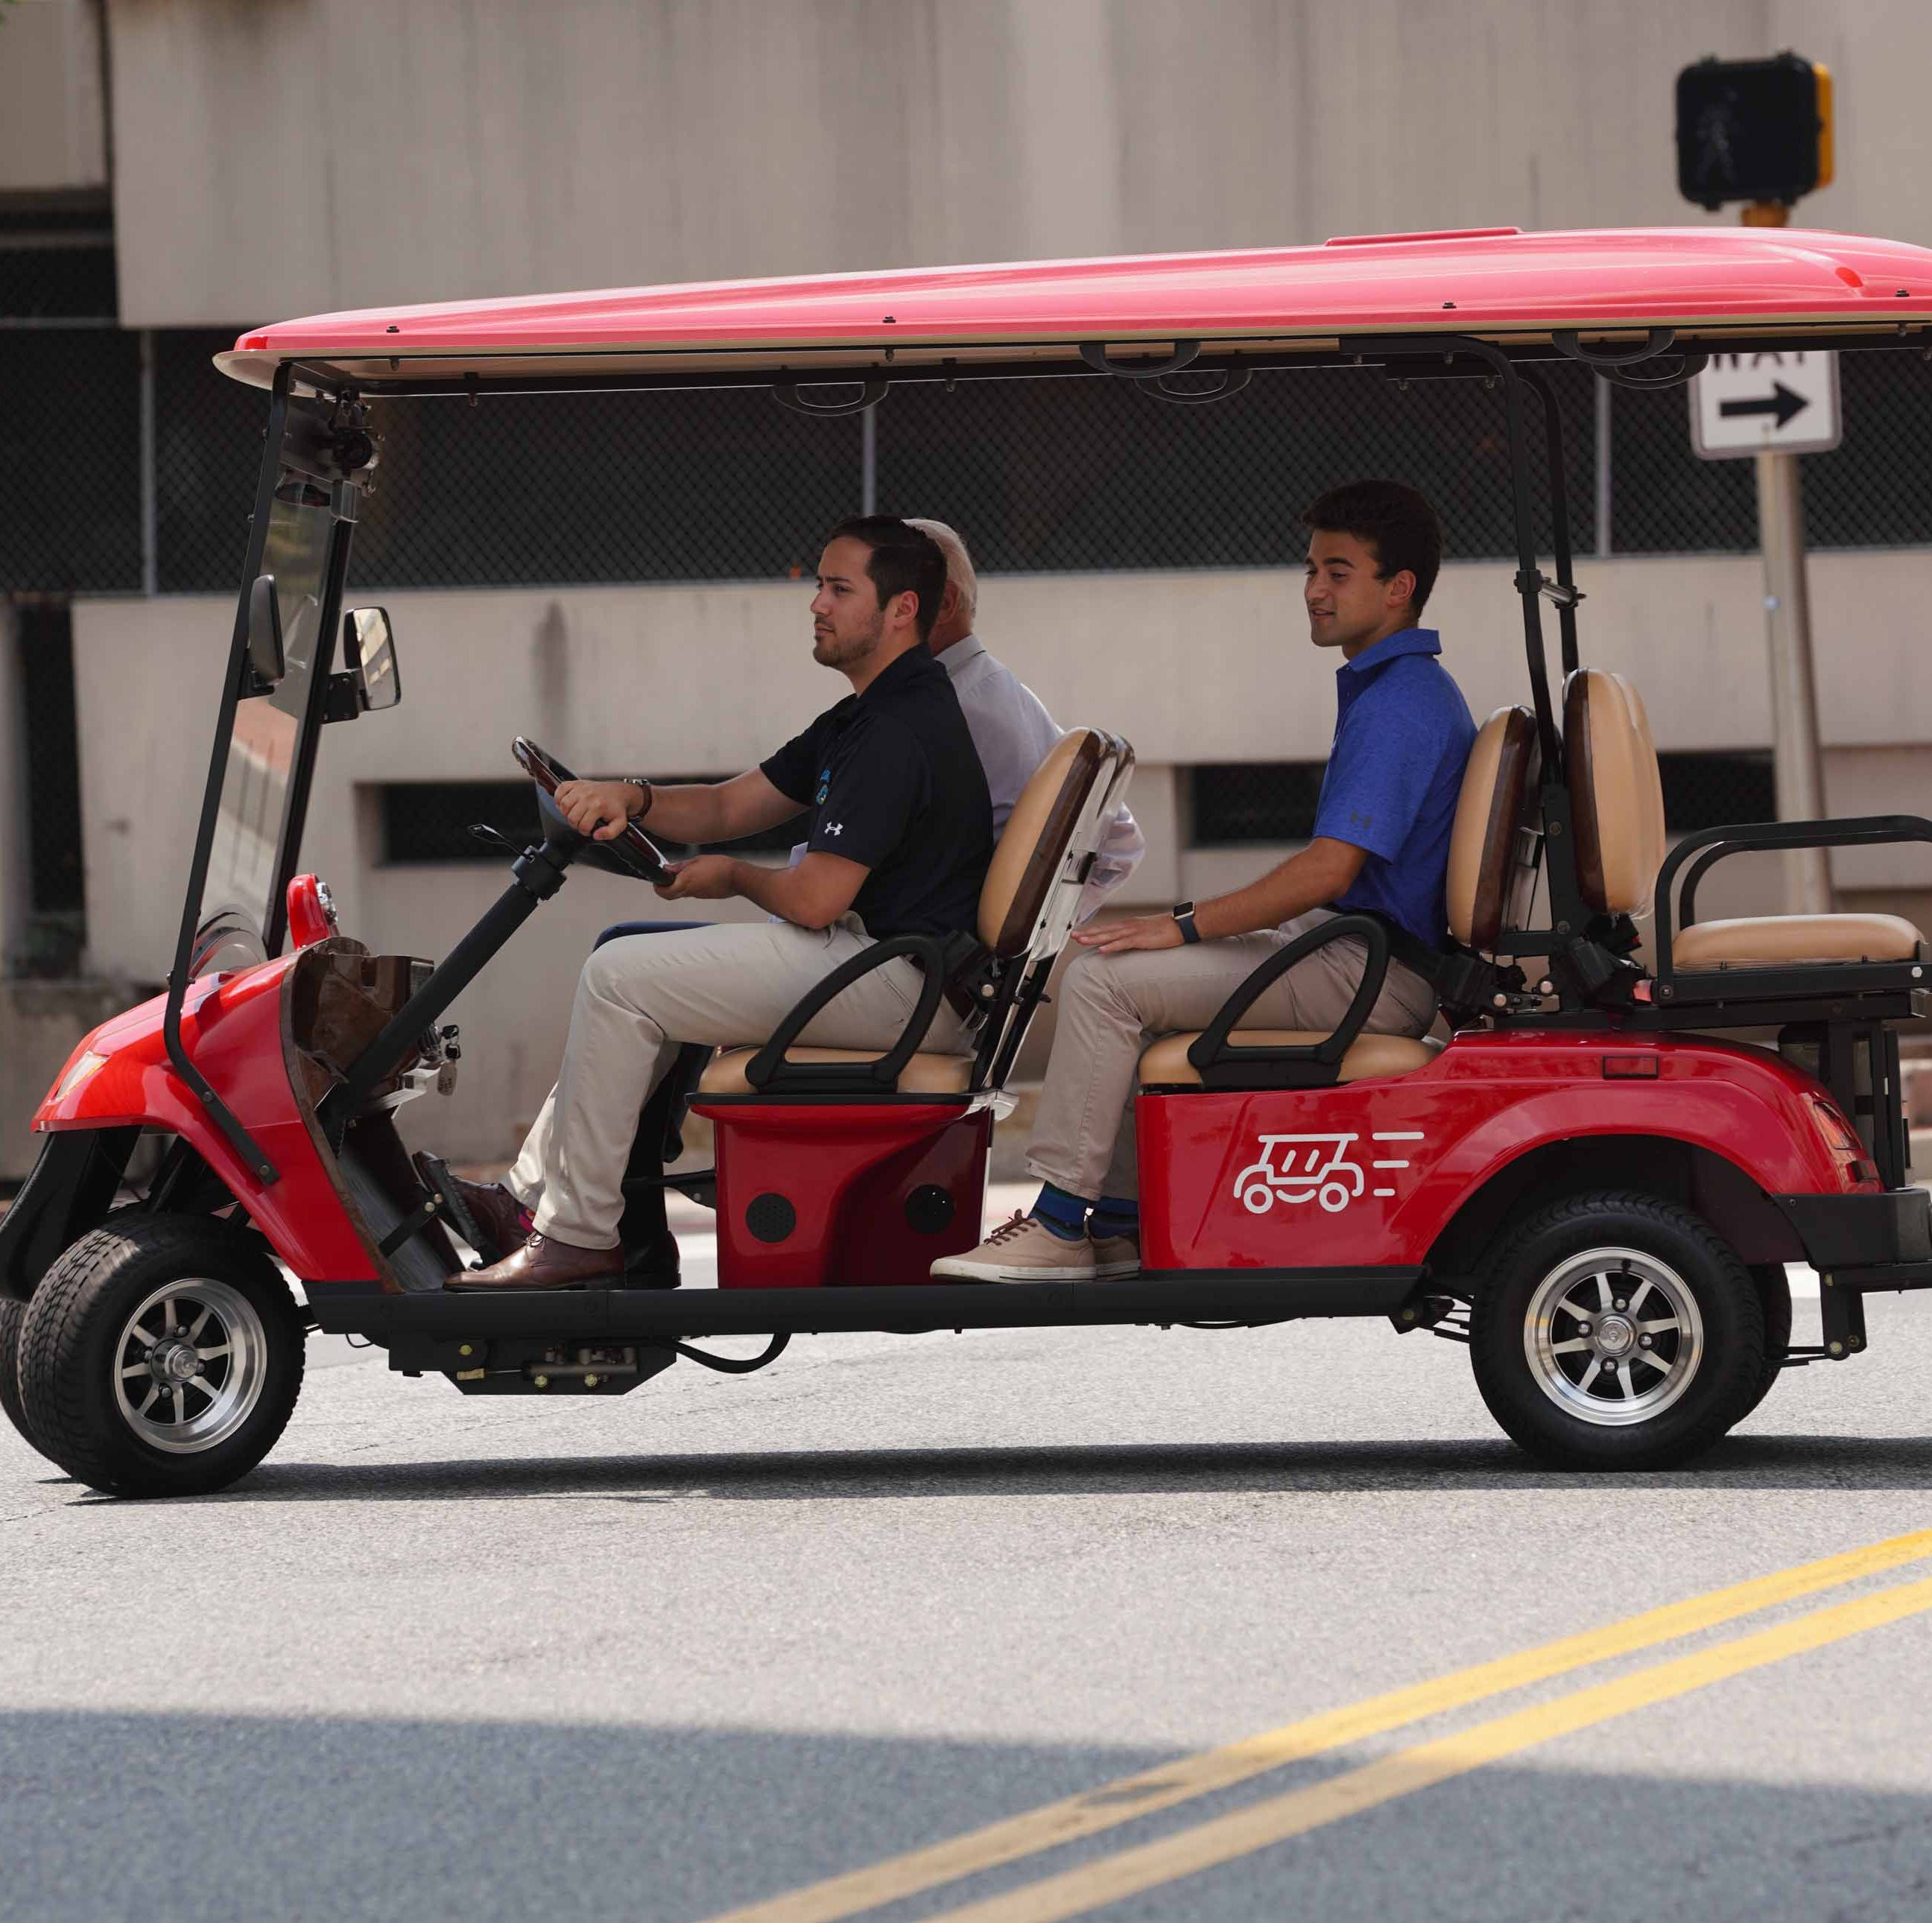 Uber-like golf carts could 'activate' Wilmington's Market Street, founders say